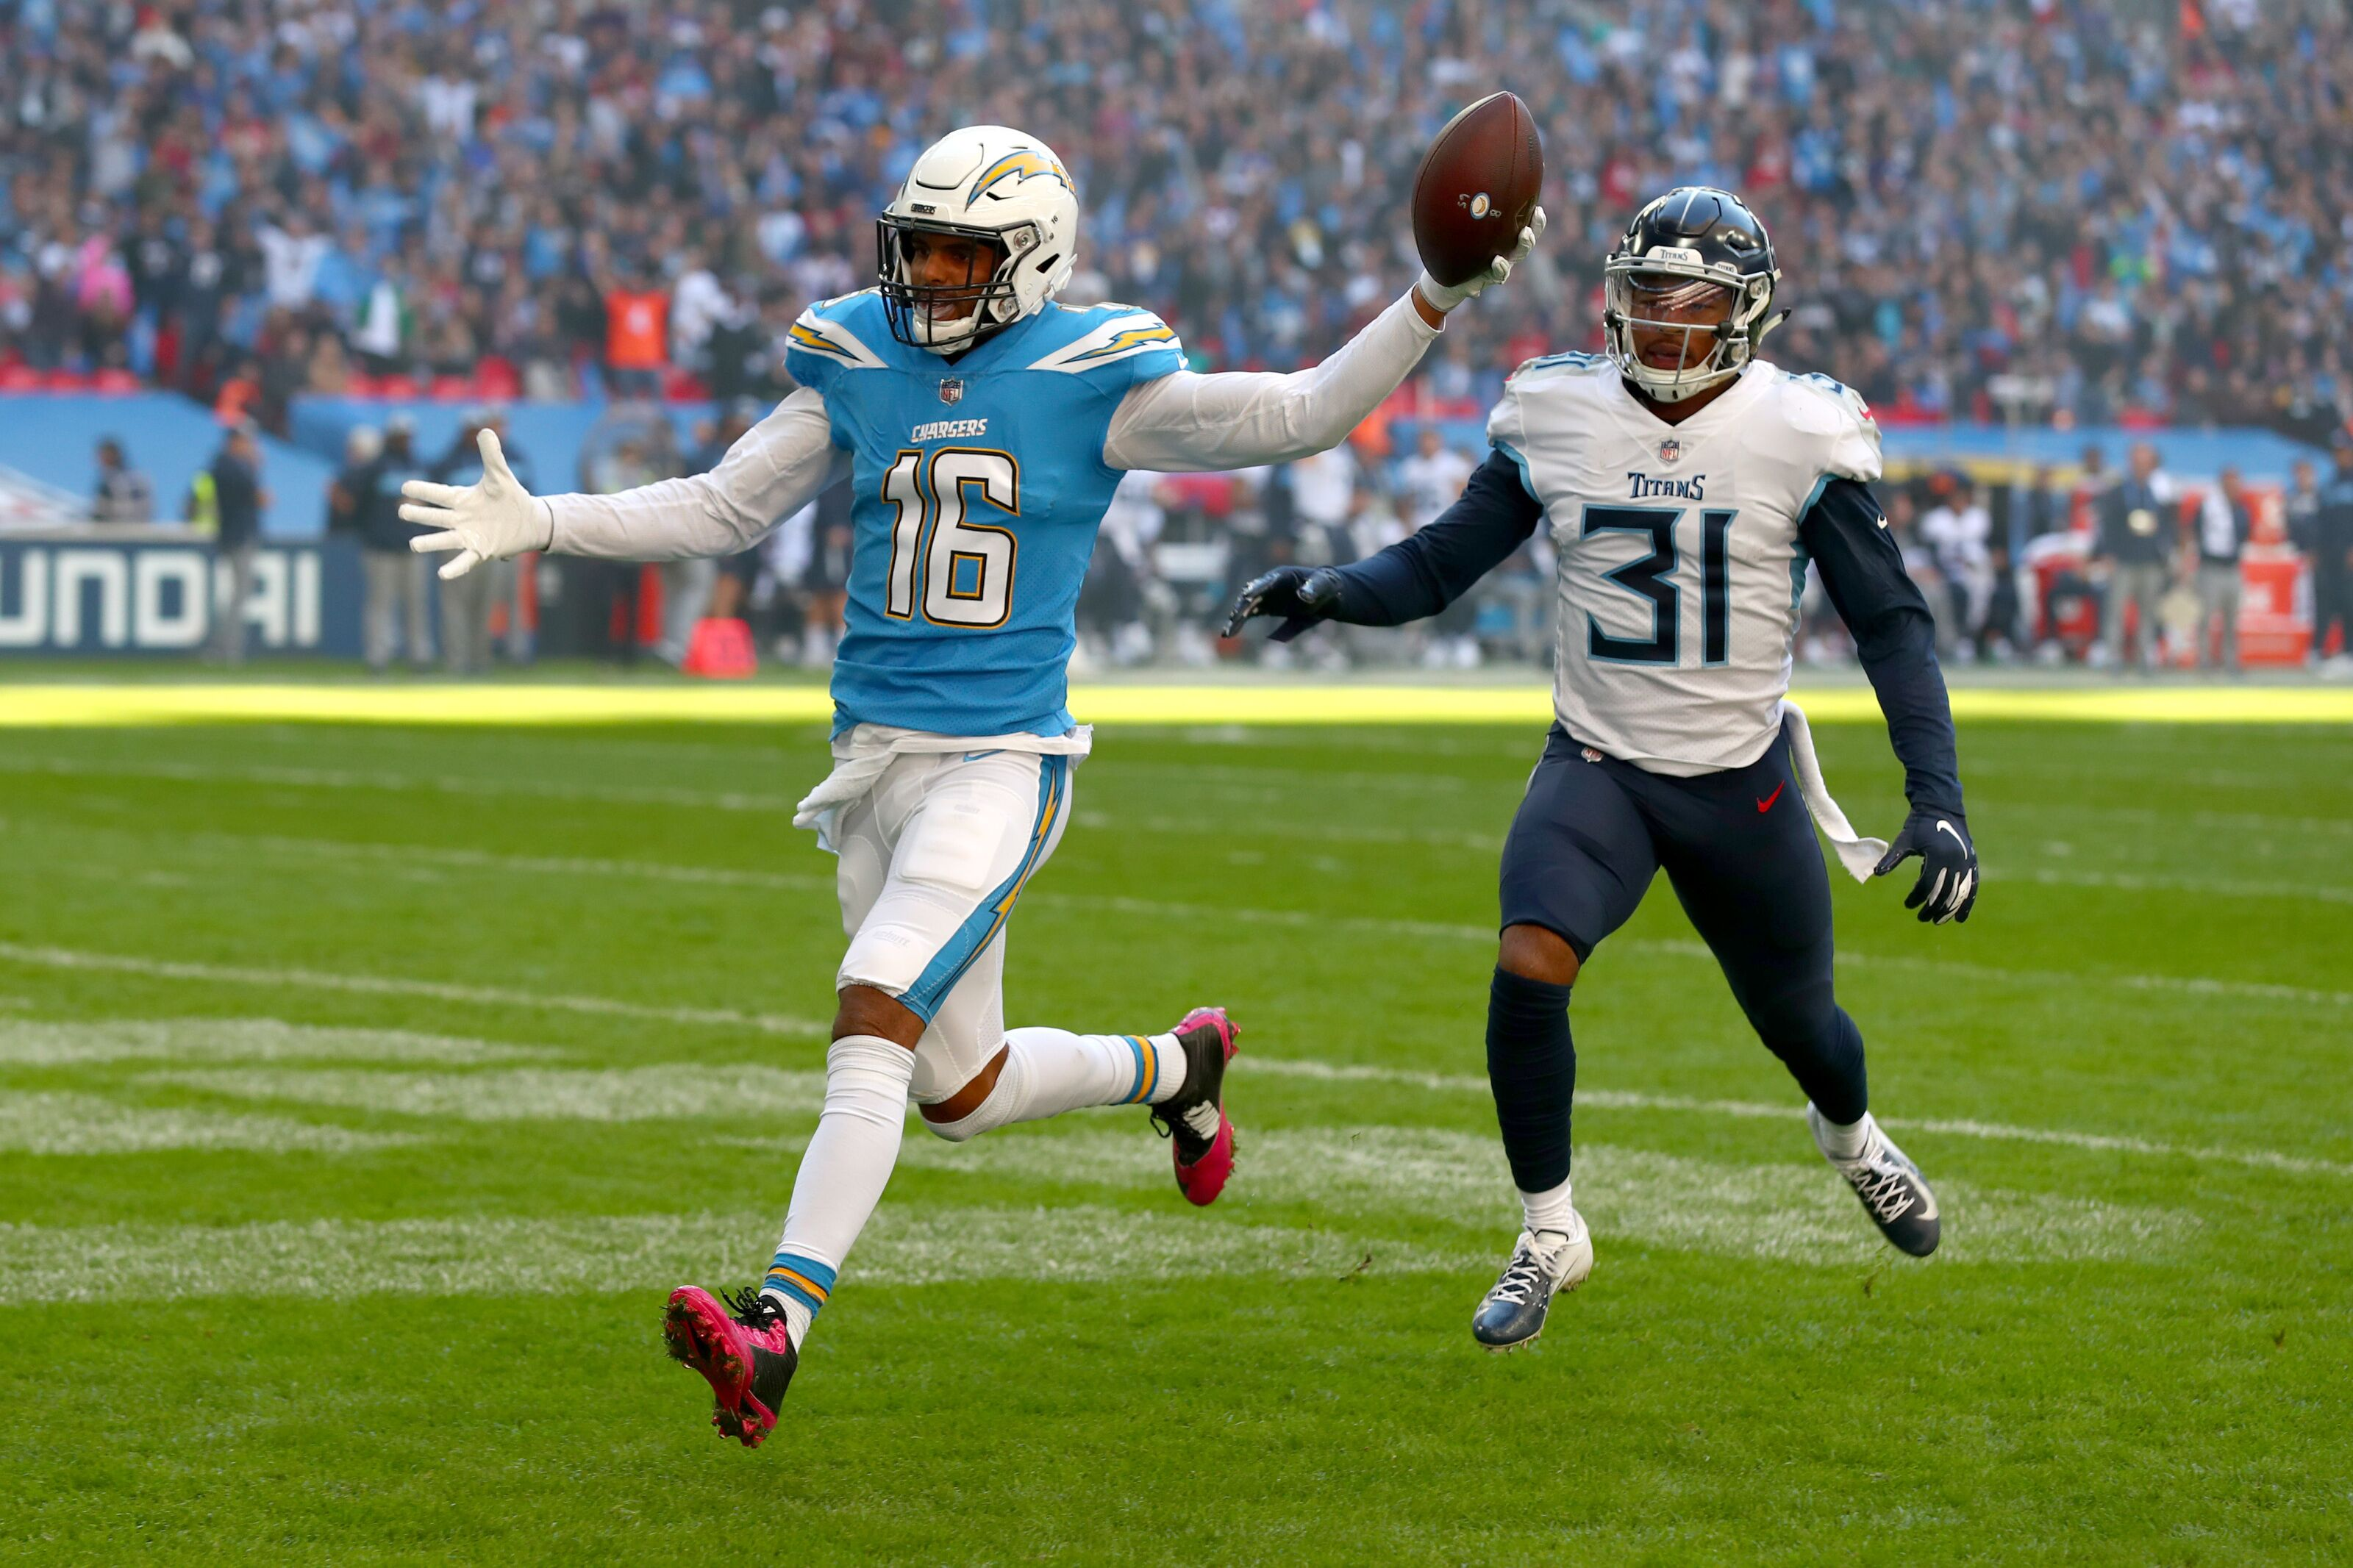 Cleveland Browns predicted as a landing spot for Tyrell Williams